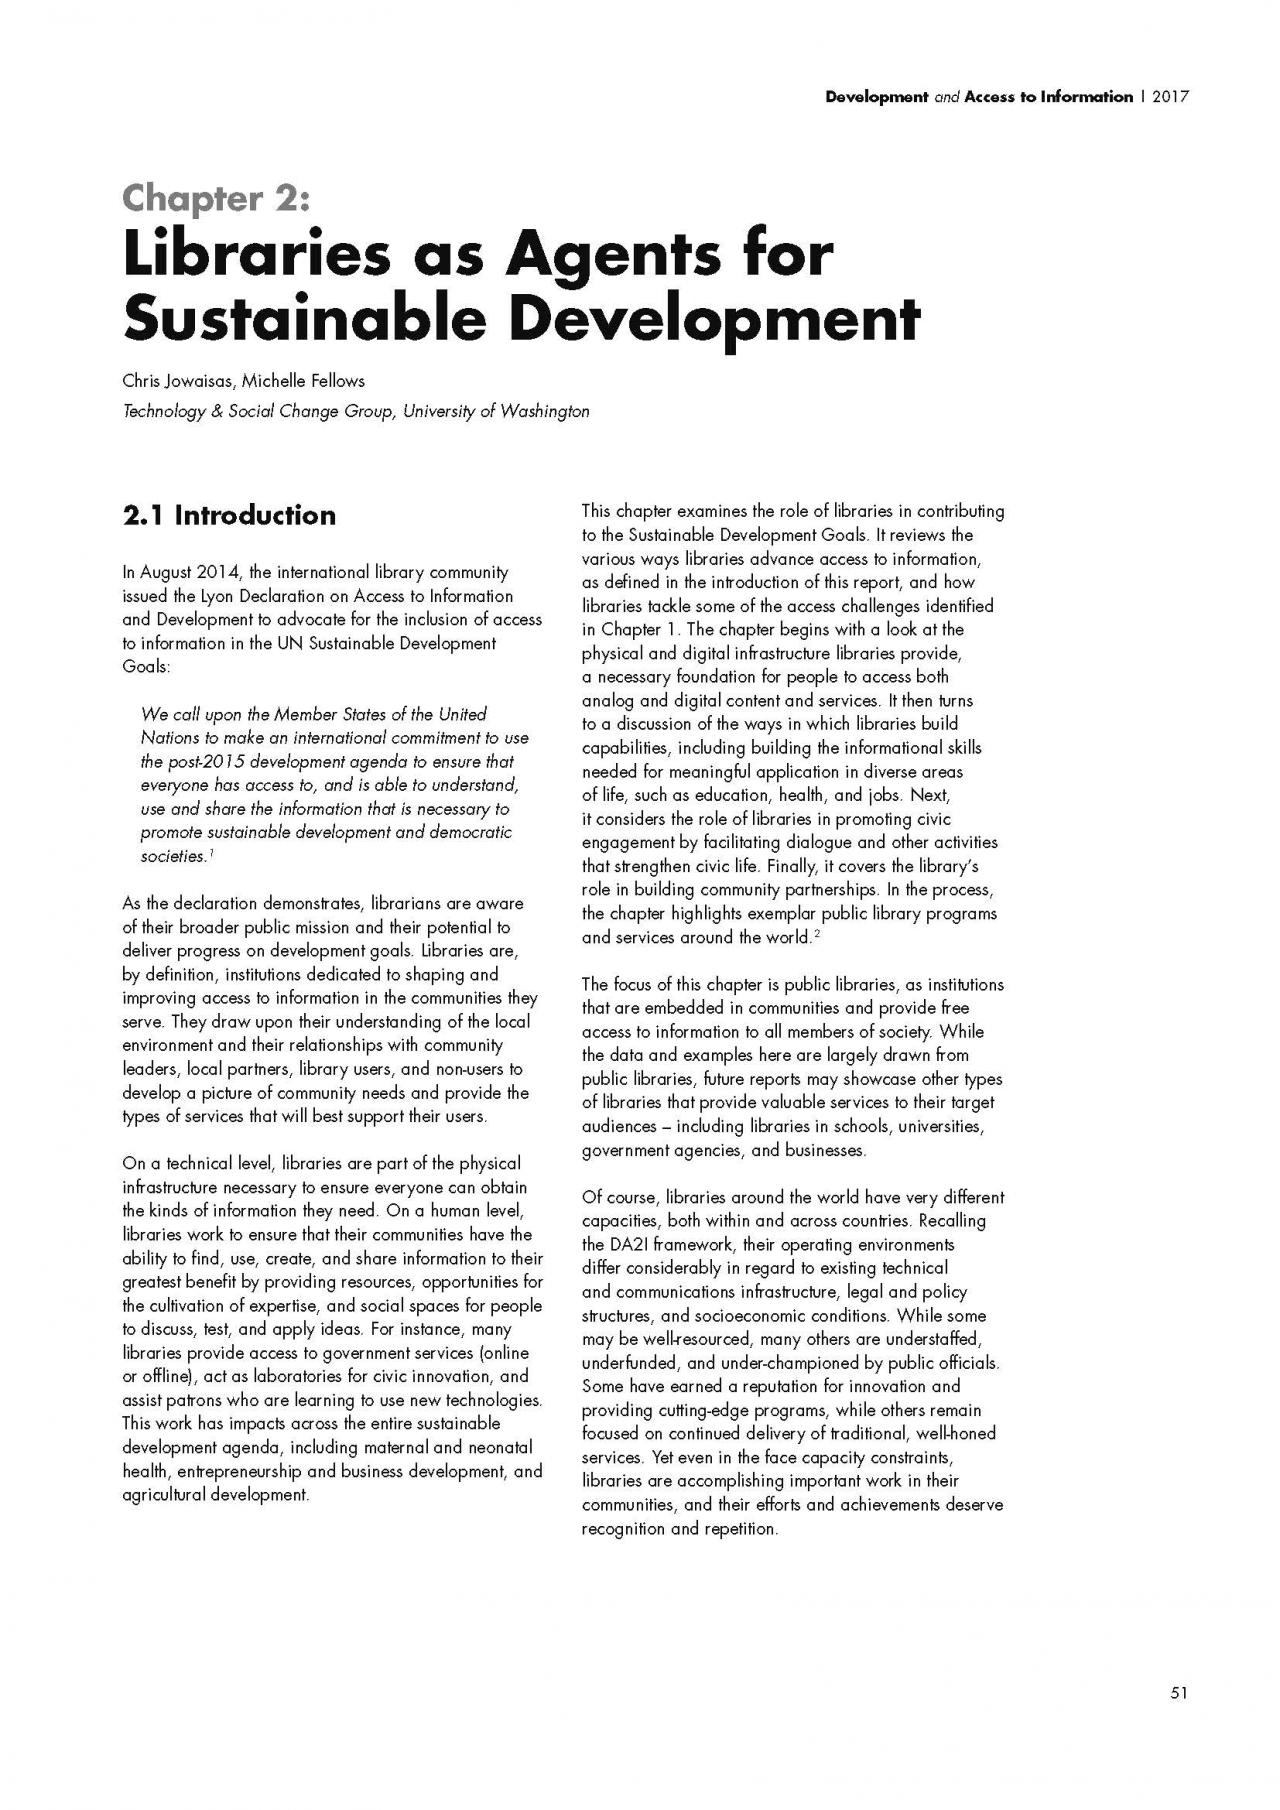 Chapter 2: Libraries as Agents for Sustainable Development